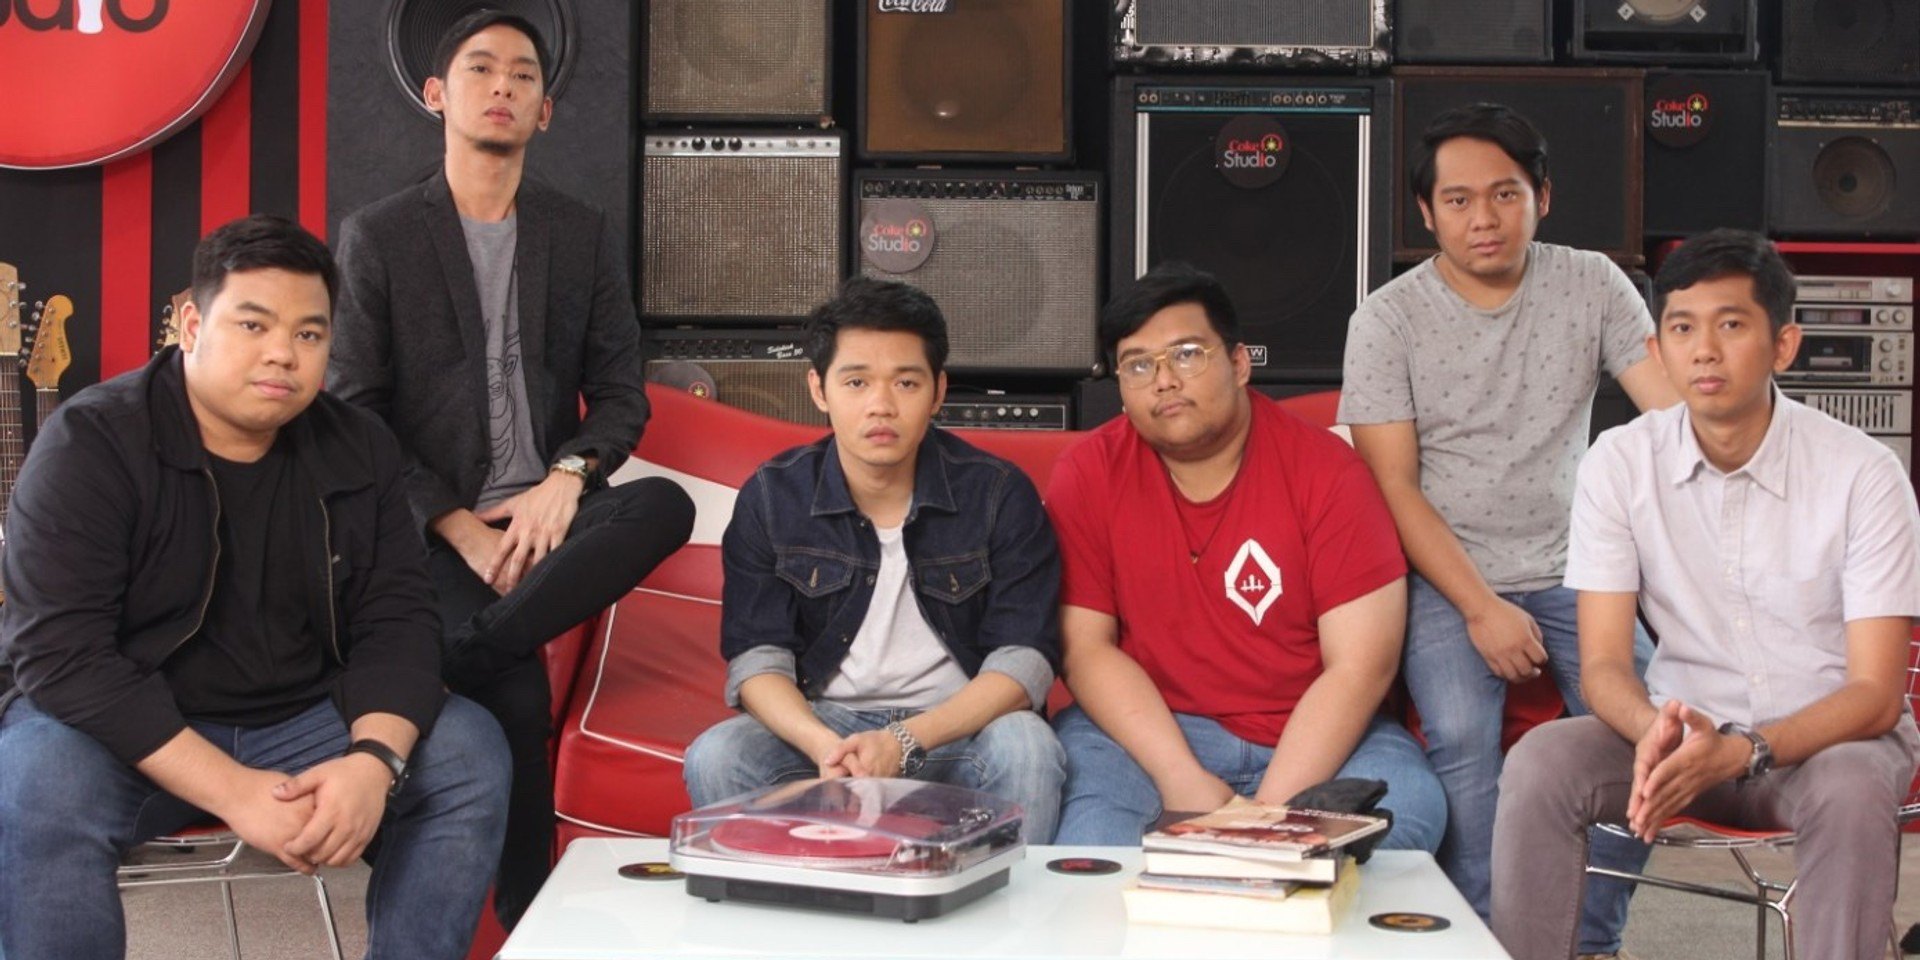 Coke ends partnership with Jensen and the Flips